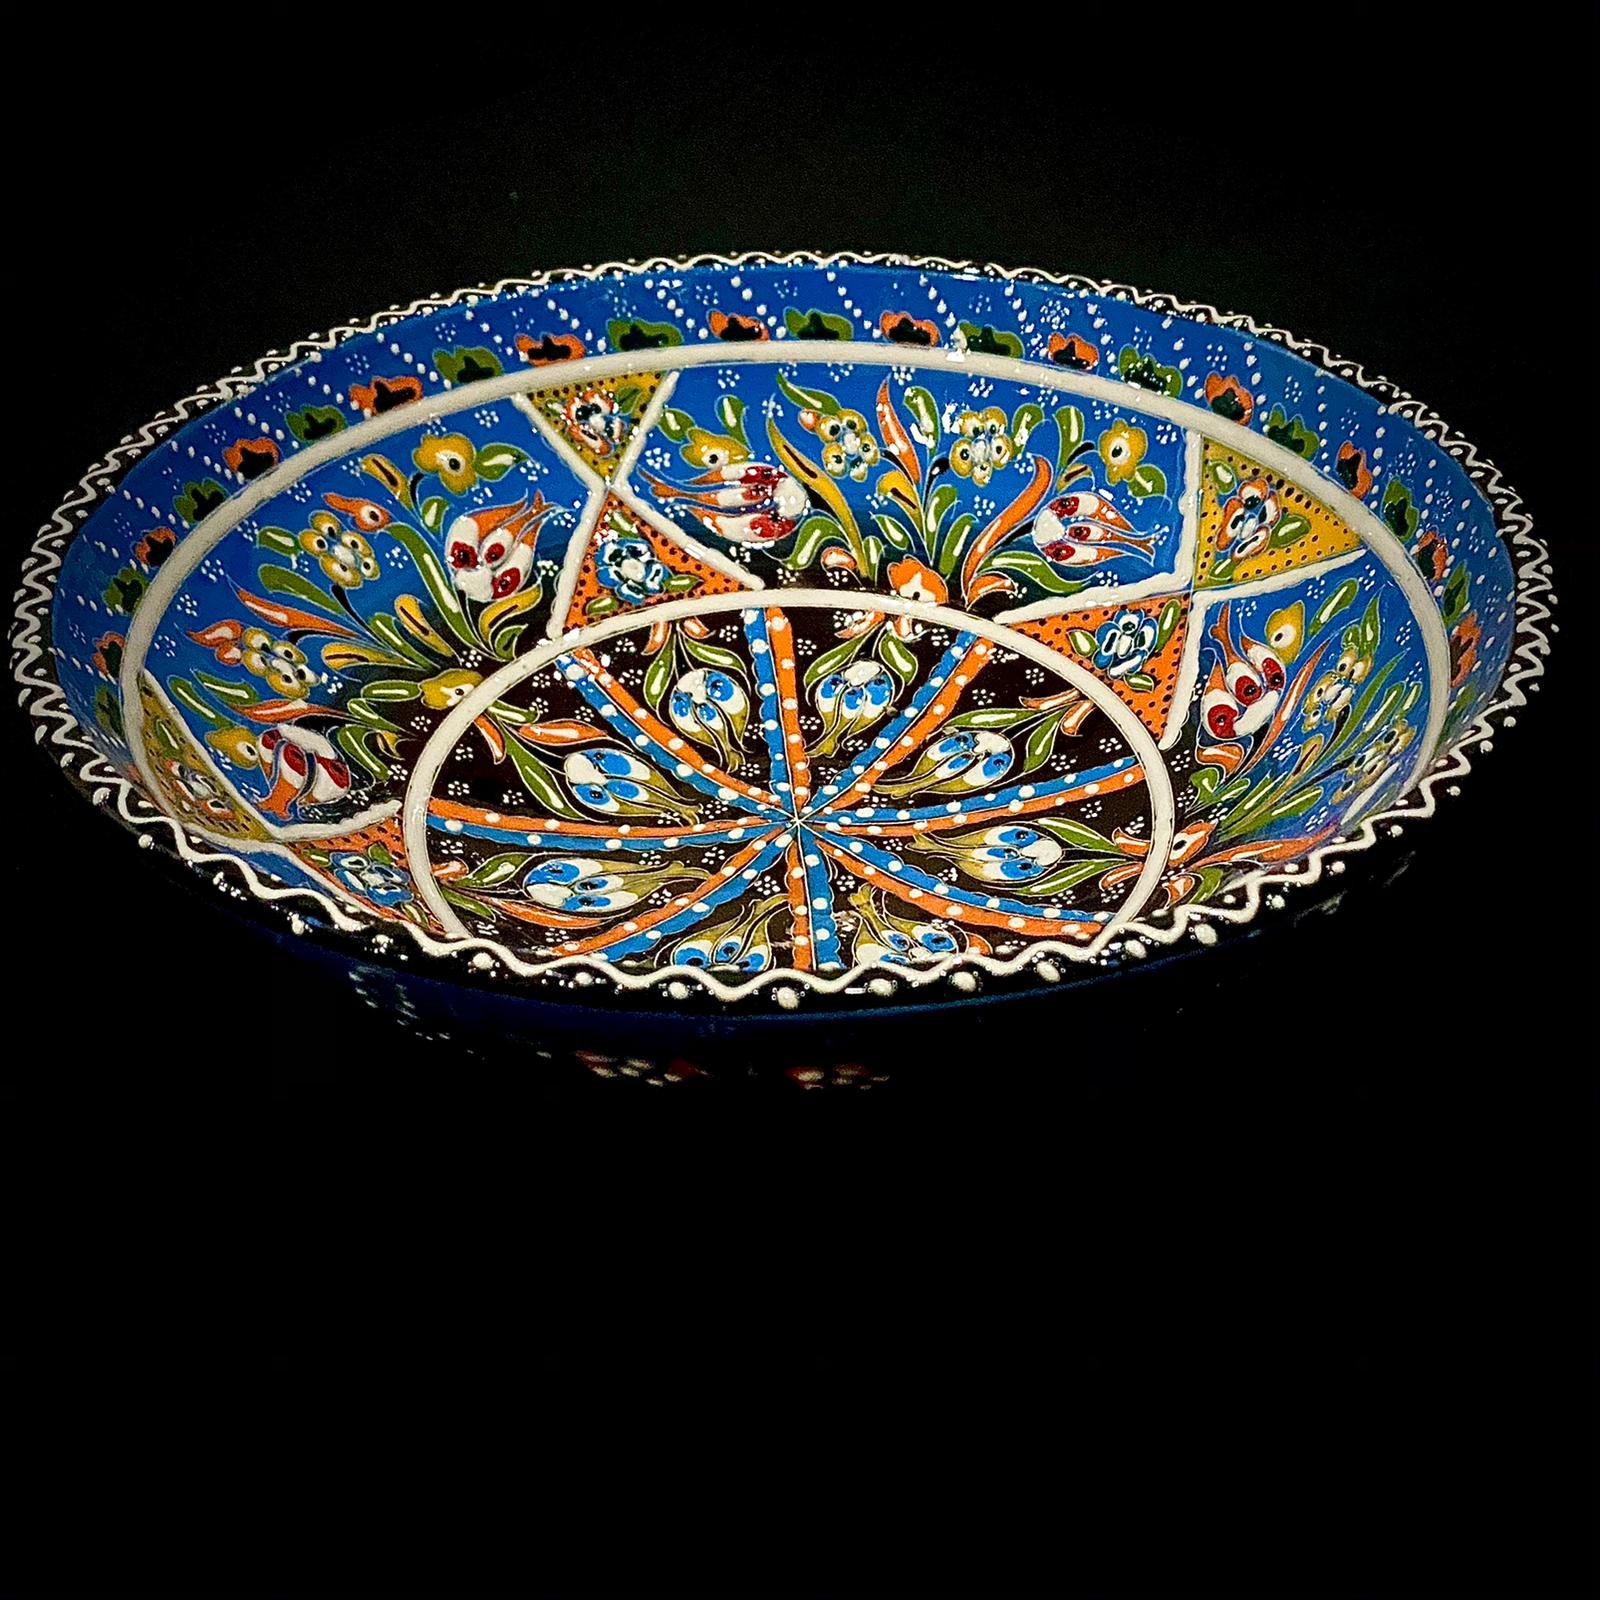 Decorative ceramic Turkish bowl